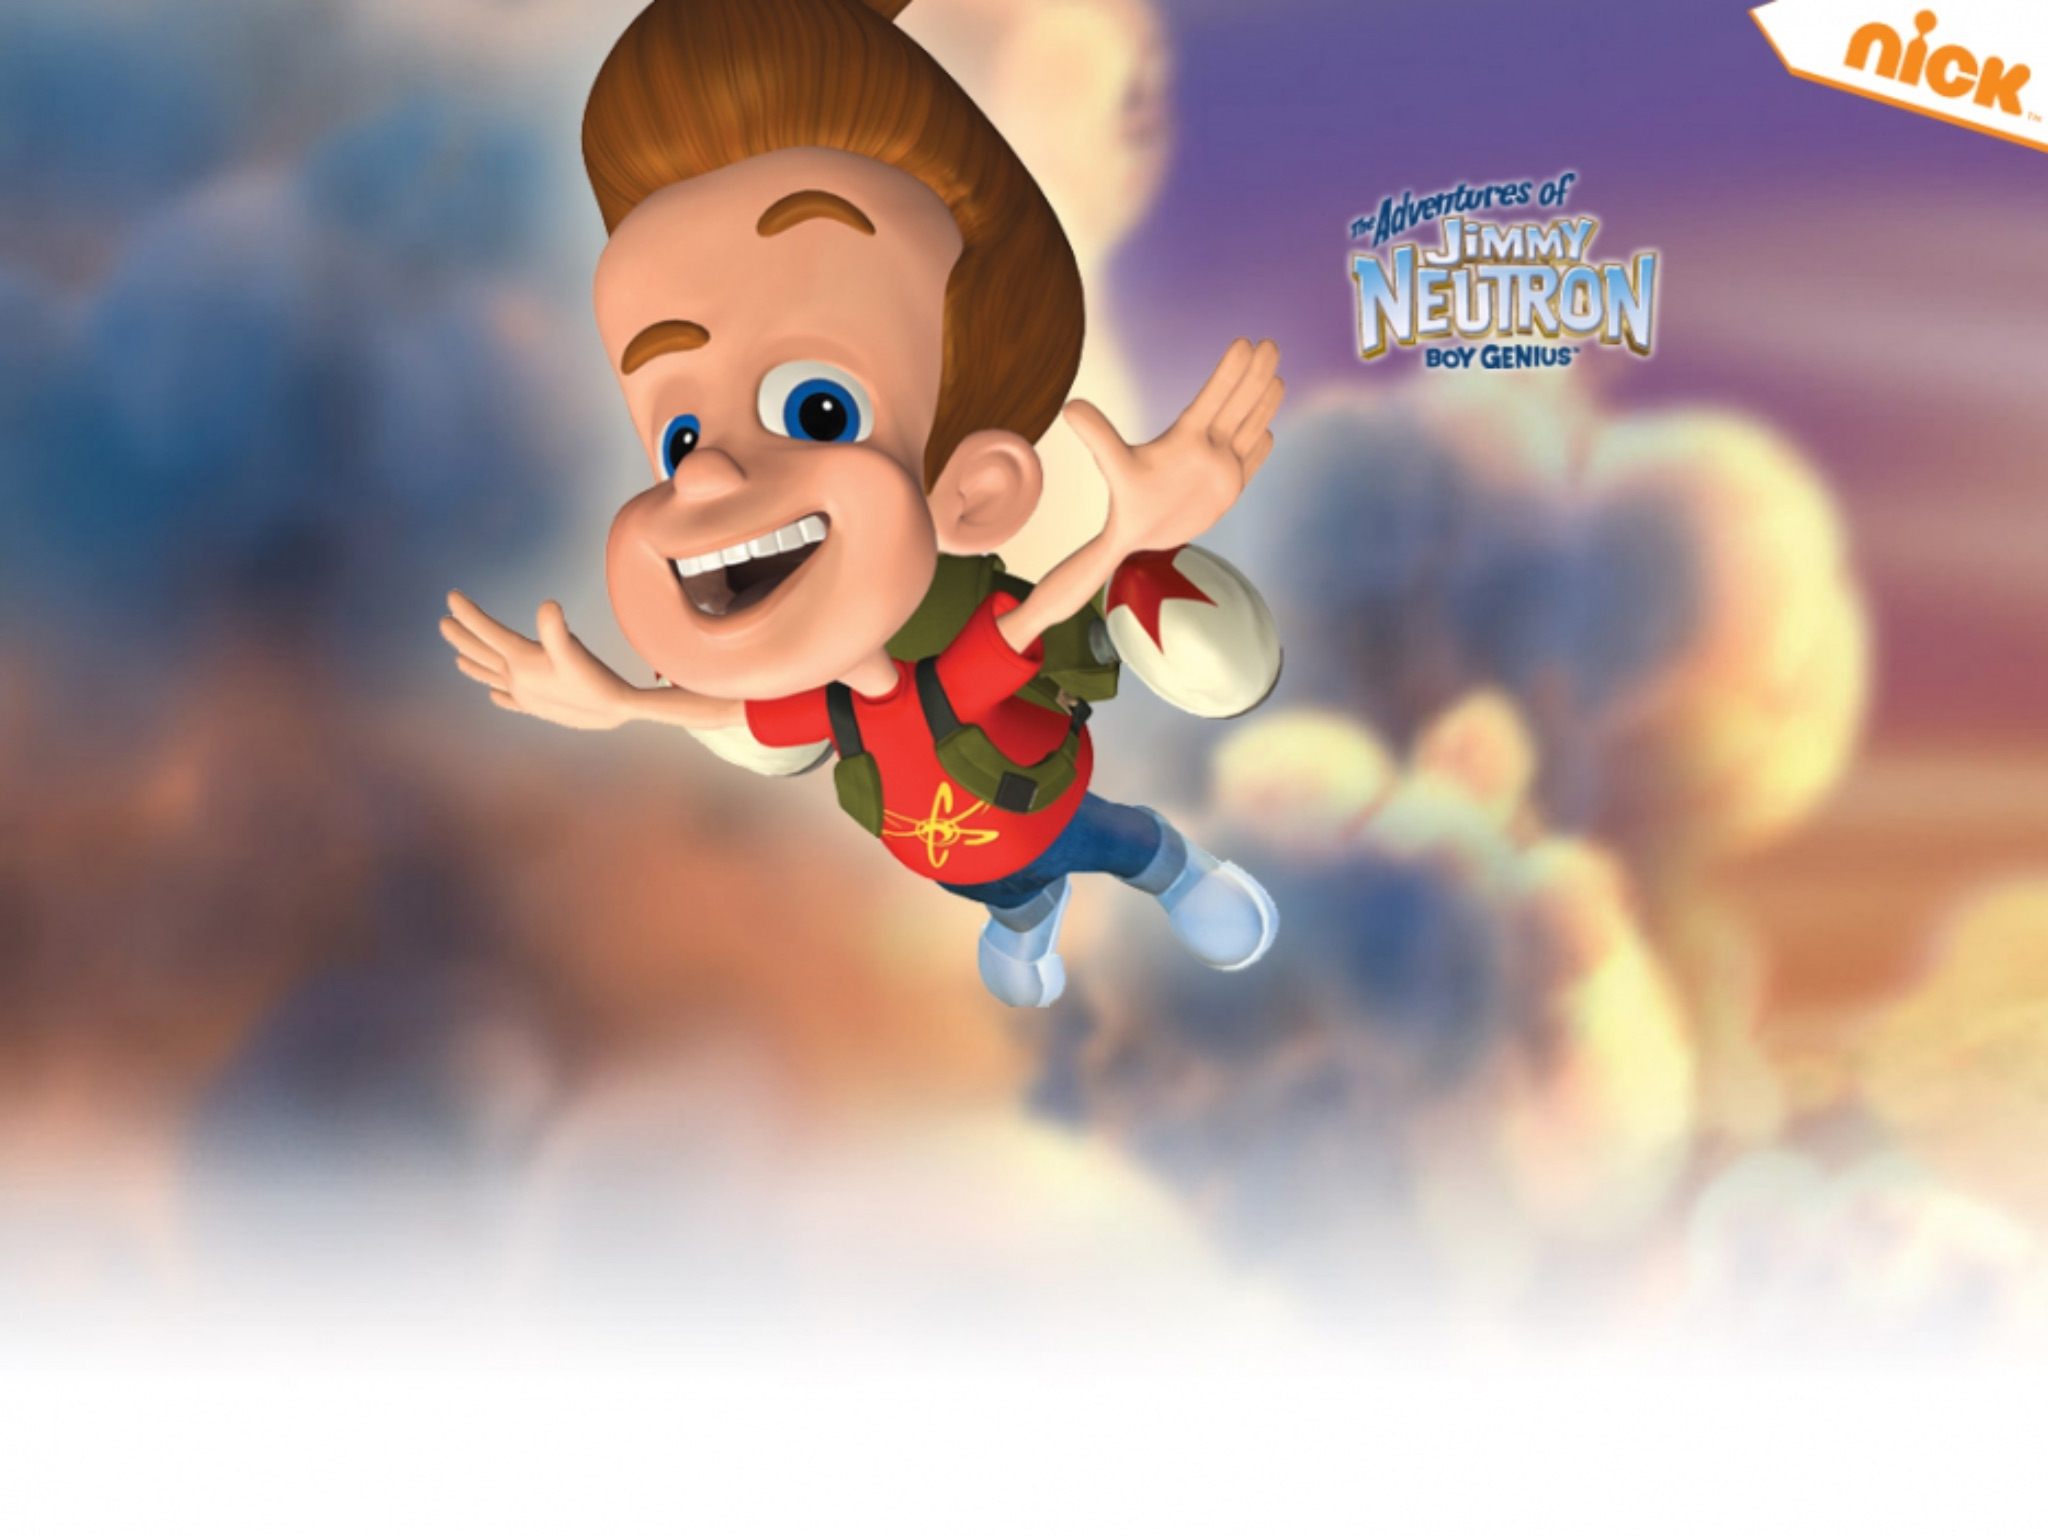 Wallpapers of jimmy   Nickelodeon and Disney Wallpaper 2048x1536